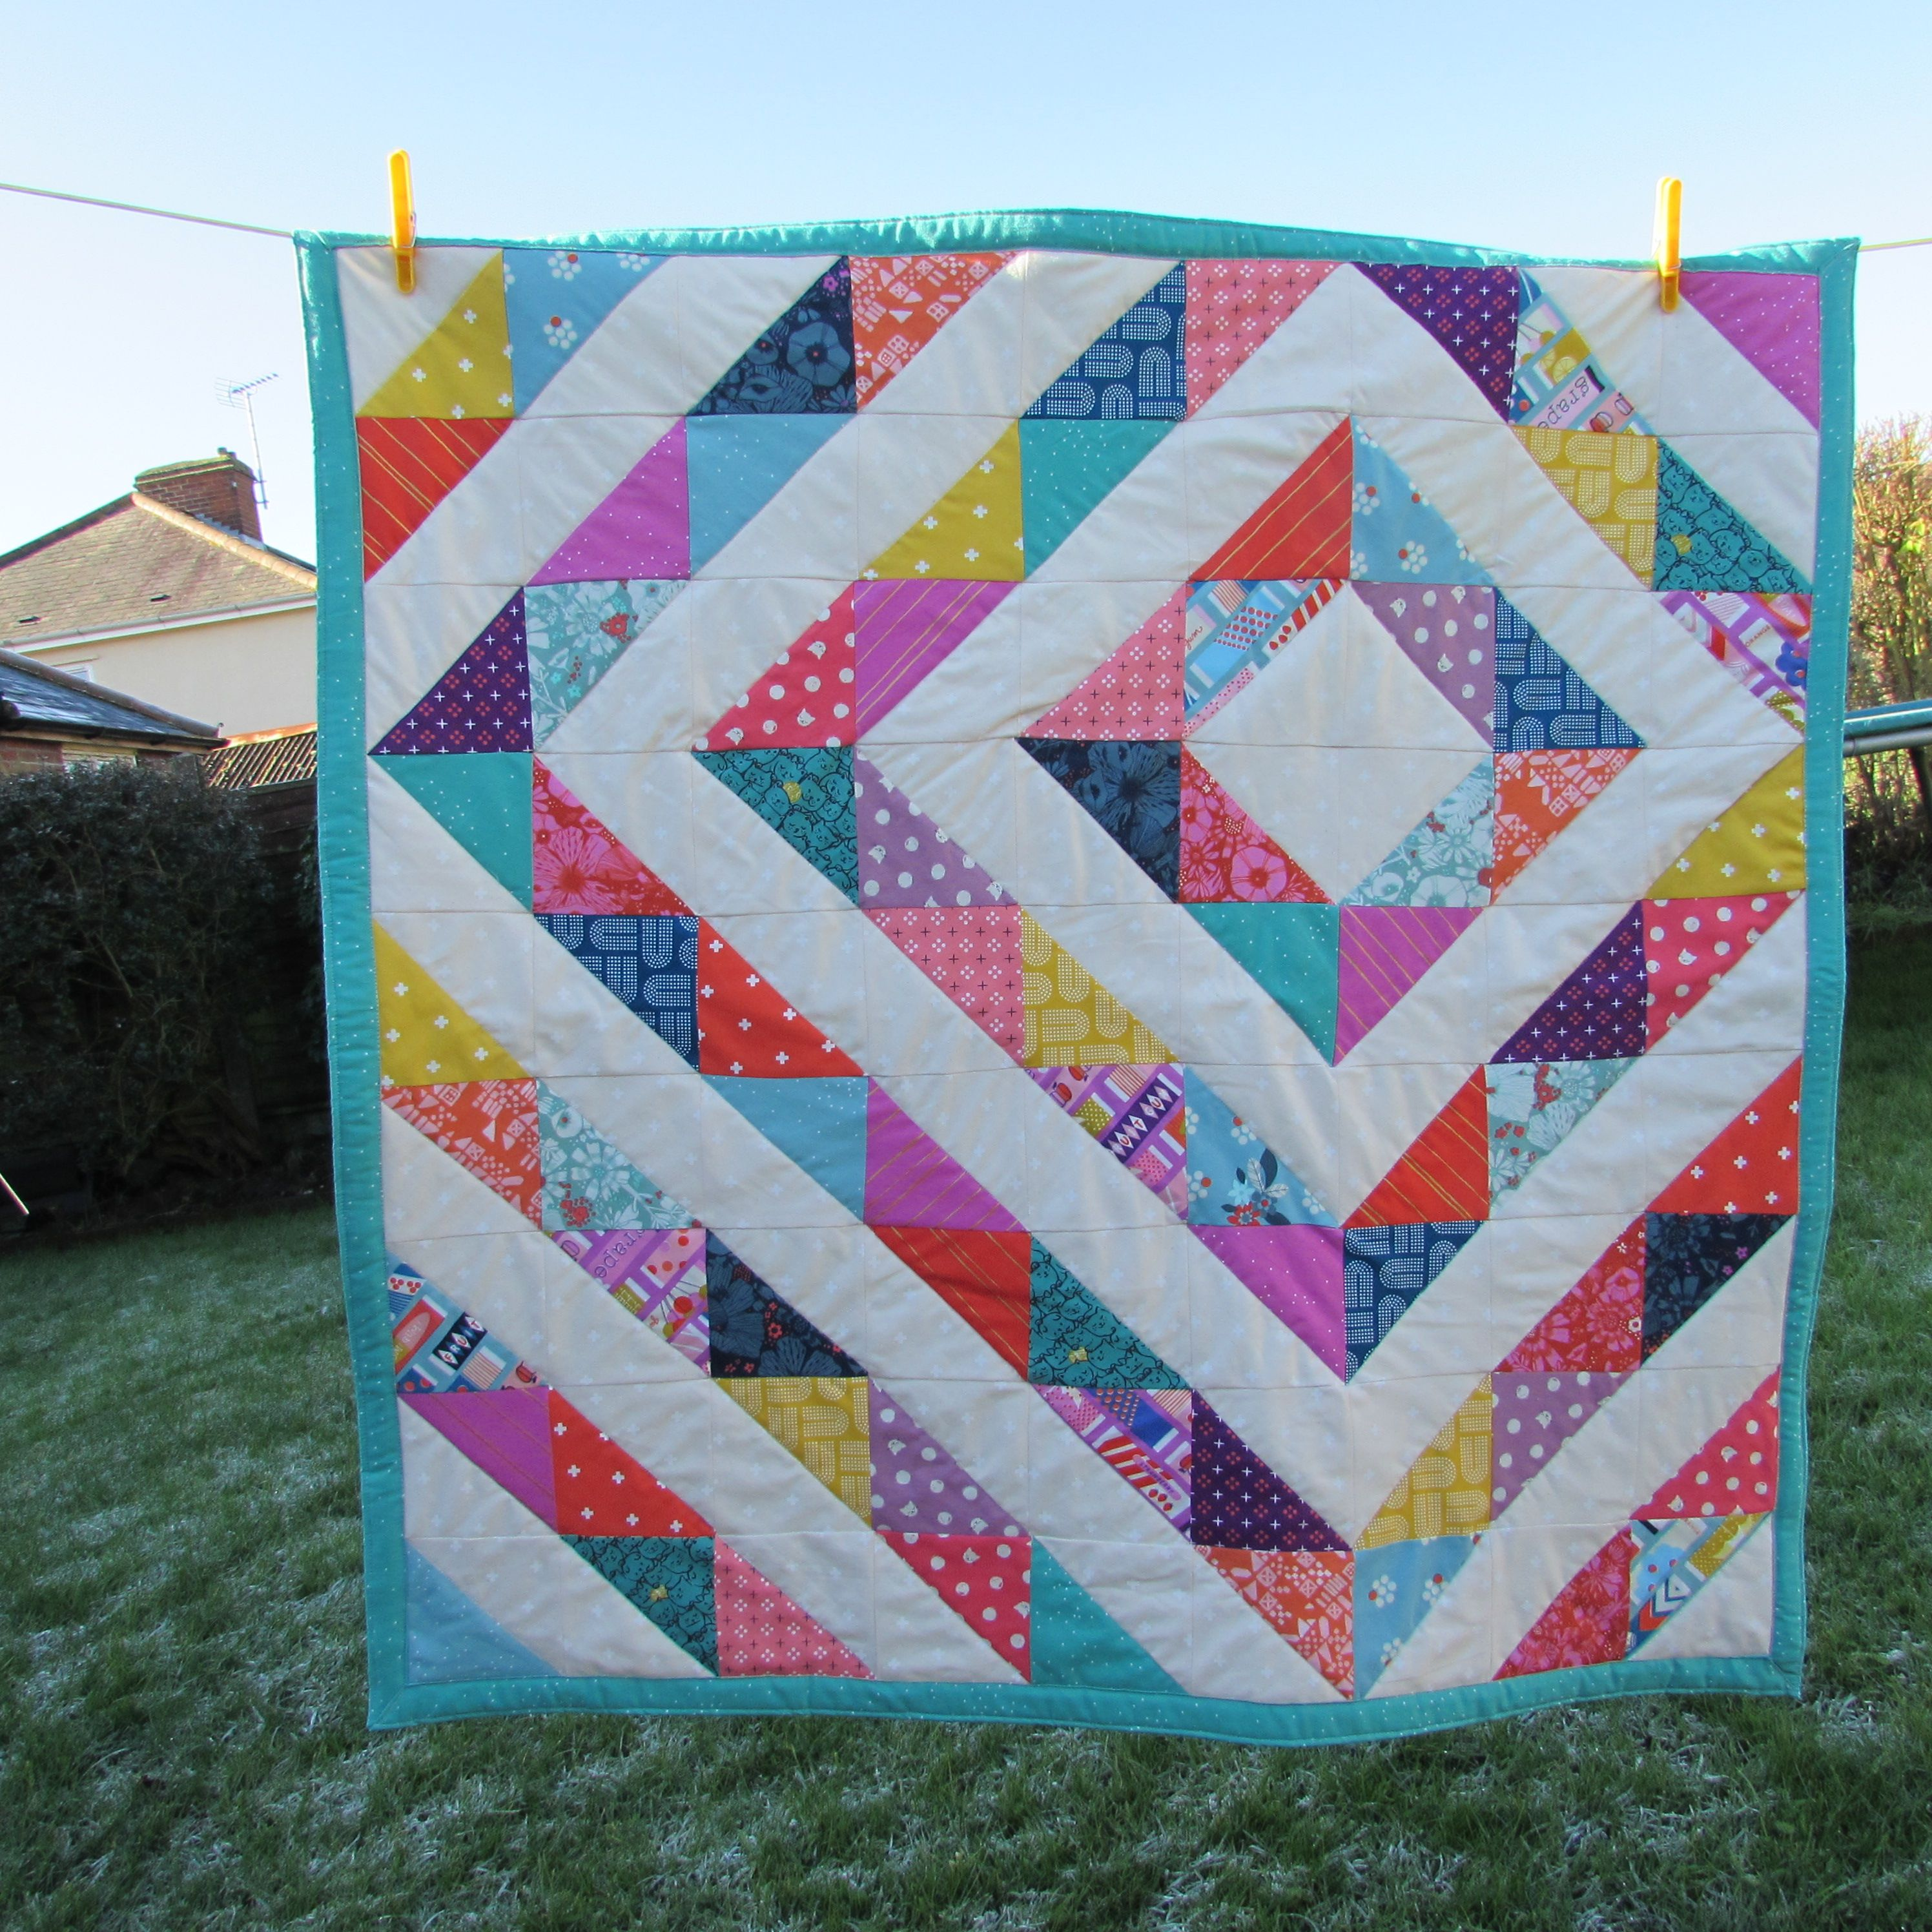 shop loved online with web kit quilting quiltalong heart deanna are quilt stitches you wall kits